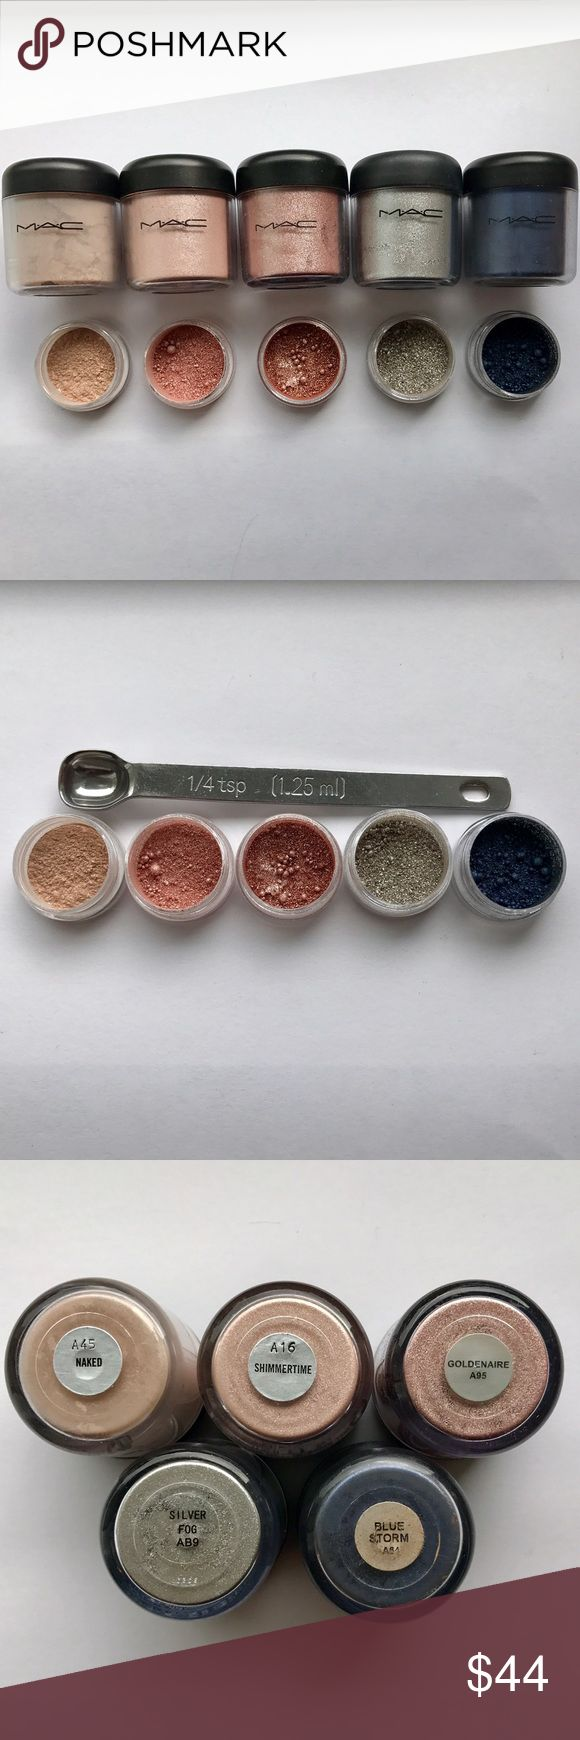 💎Rare MAC Sample Set Authentic 1/4 teaspoon This MAC Pigment Sample Set contains 1/4 teaspoon of each of the following pigments: Naked, Shimmertime, Goldenaire, Silver Fog, and Blue Sorm !This is a great way to try out Authentic Mac pigments without spending a fortune of them! Pigments come in 3g BPA Free jars, a label on bottom, and 1/4 teaspoon of each Pigment. LIMITED QUANTITY! SHIPS THE NEXT DAY💖 MAC Cosmetics Makeup Eyeshadow